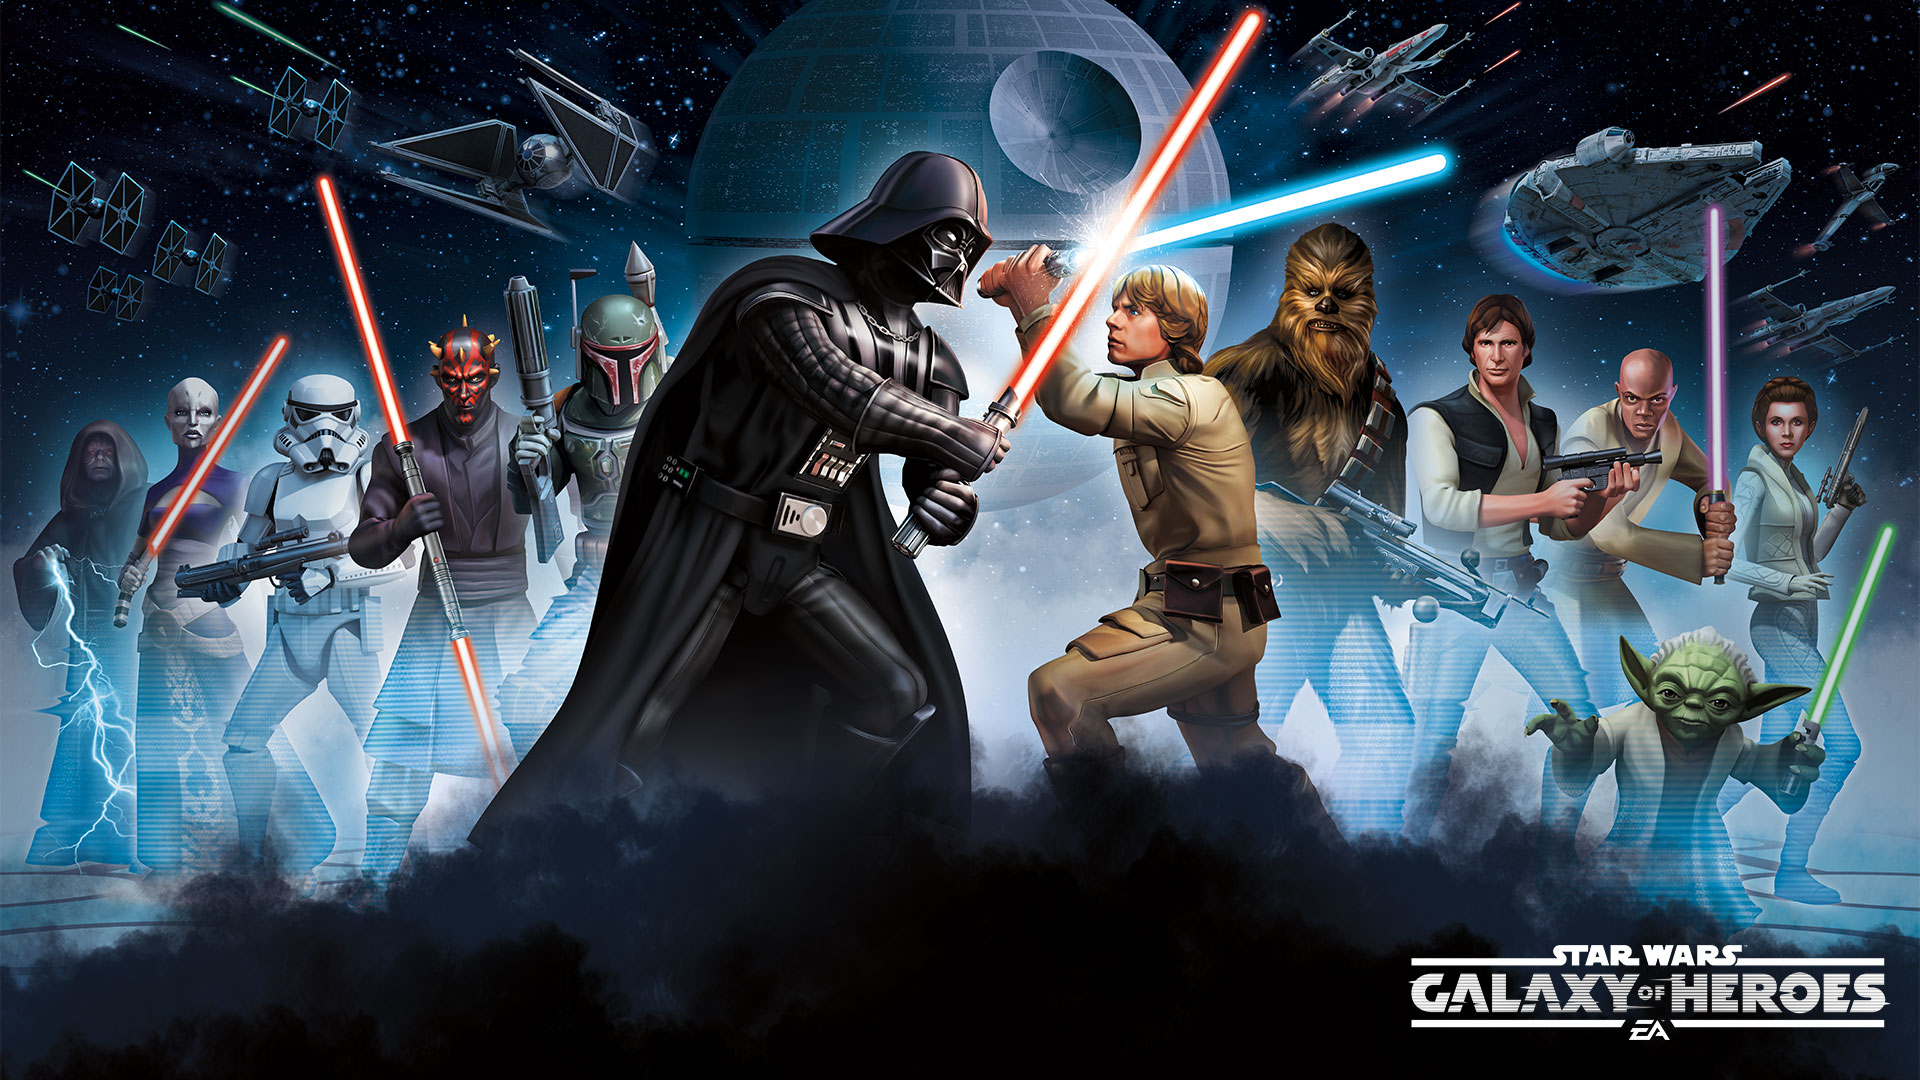 Star Wars Jedi Challenges A New Smartphone Powered Augmented Reality Experience Launching This Holiday Saudishopper